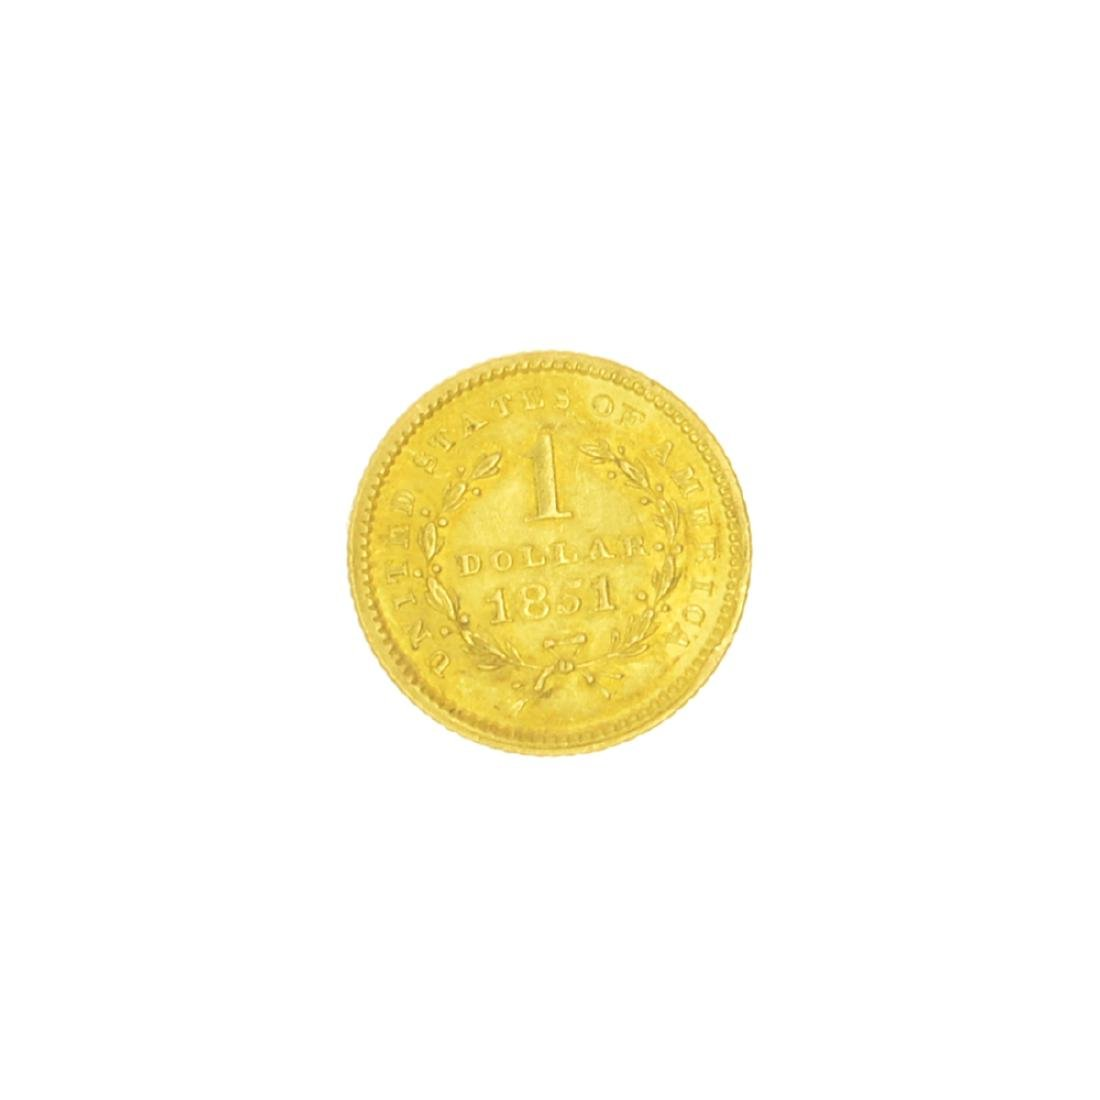 Very Rare 1851 $1 U.S. Liberty Head Gold Coin Great - 2